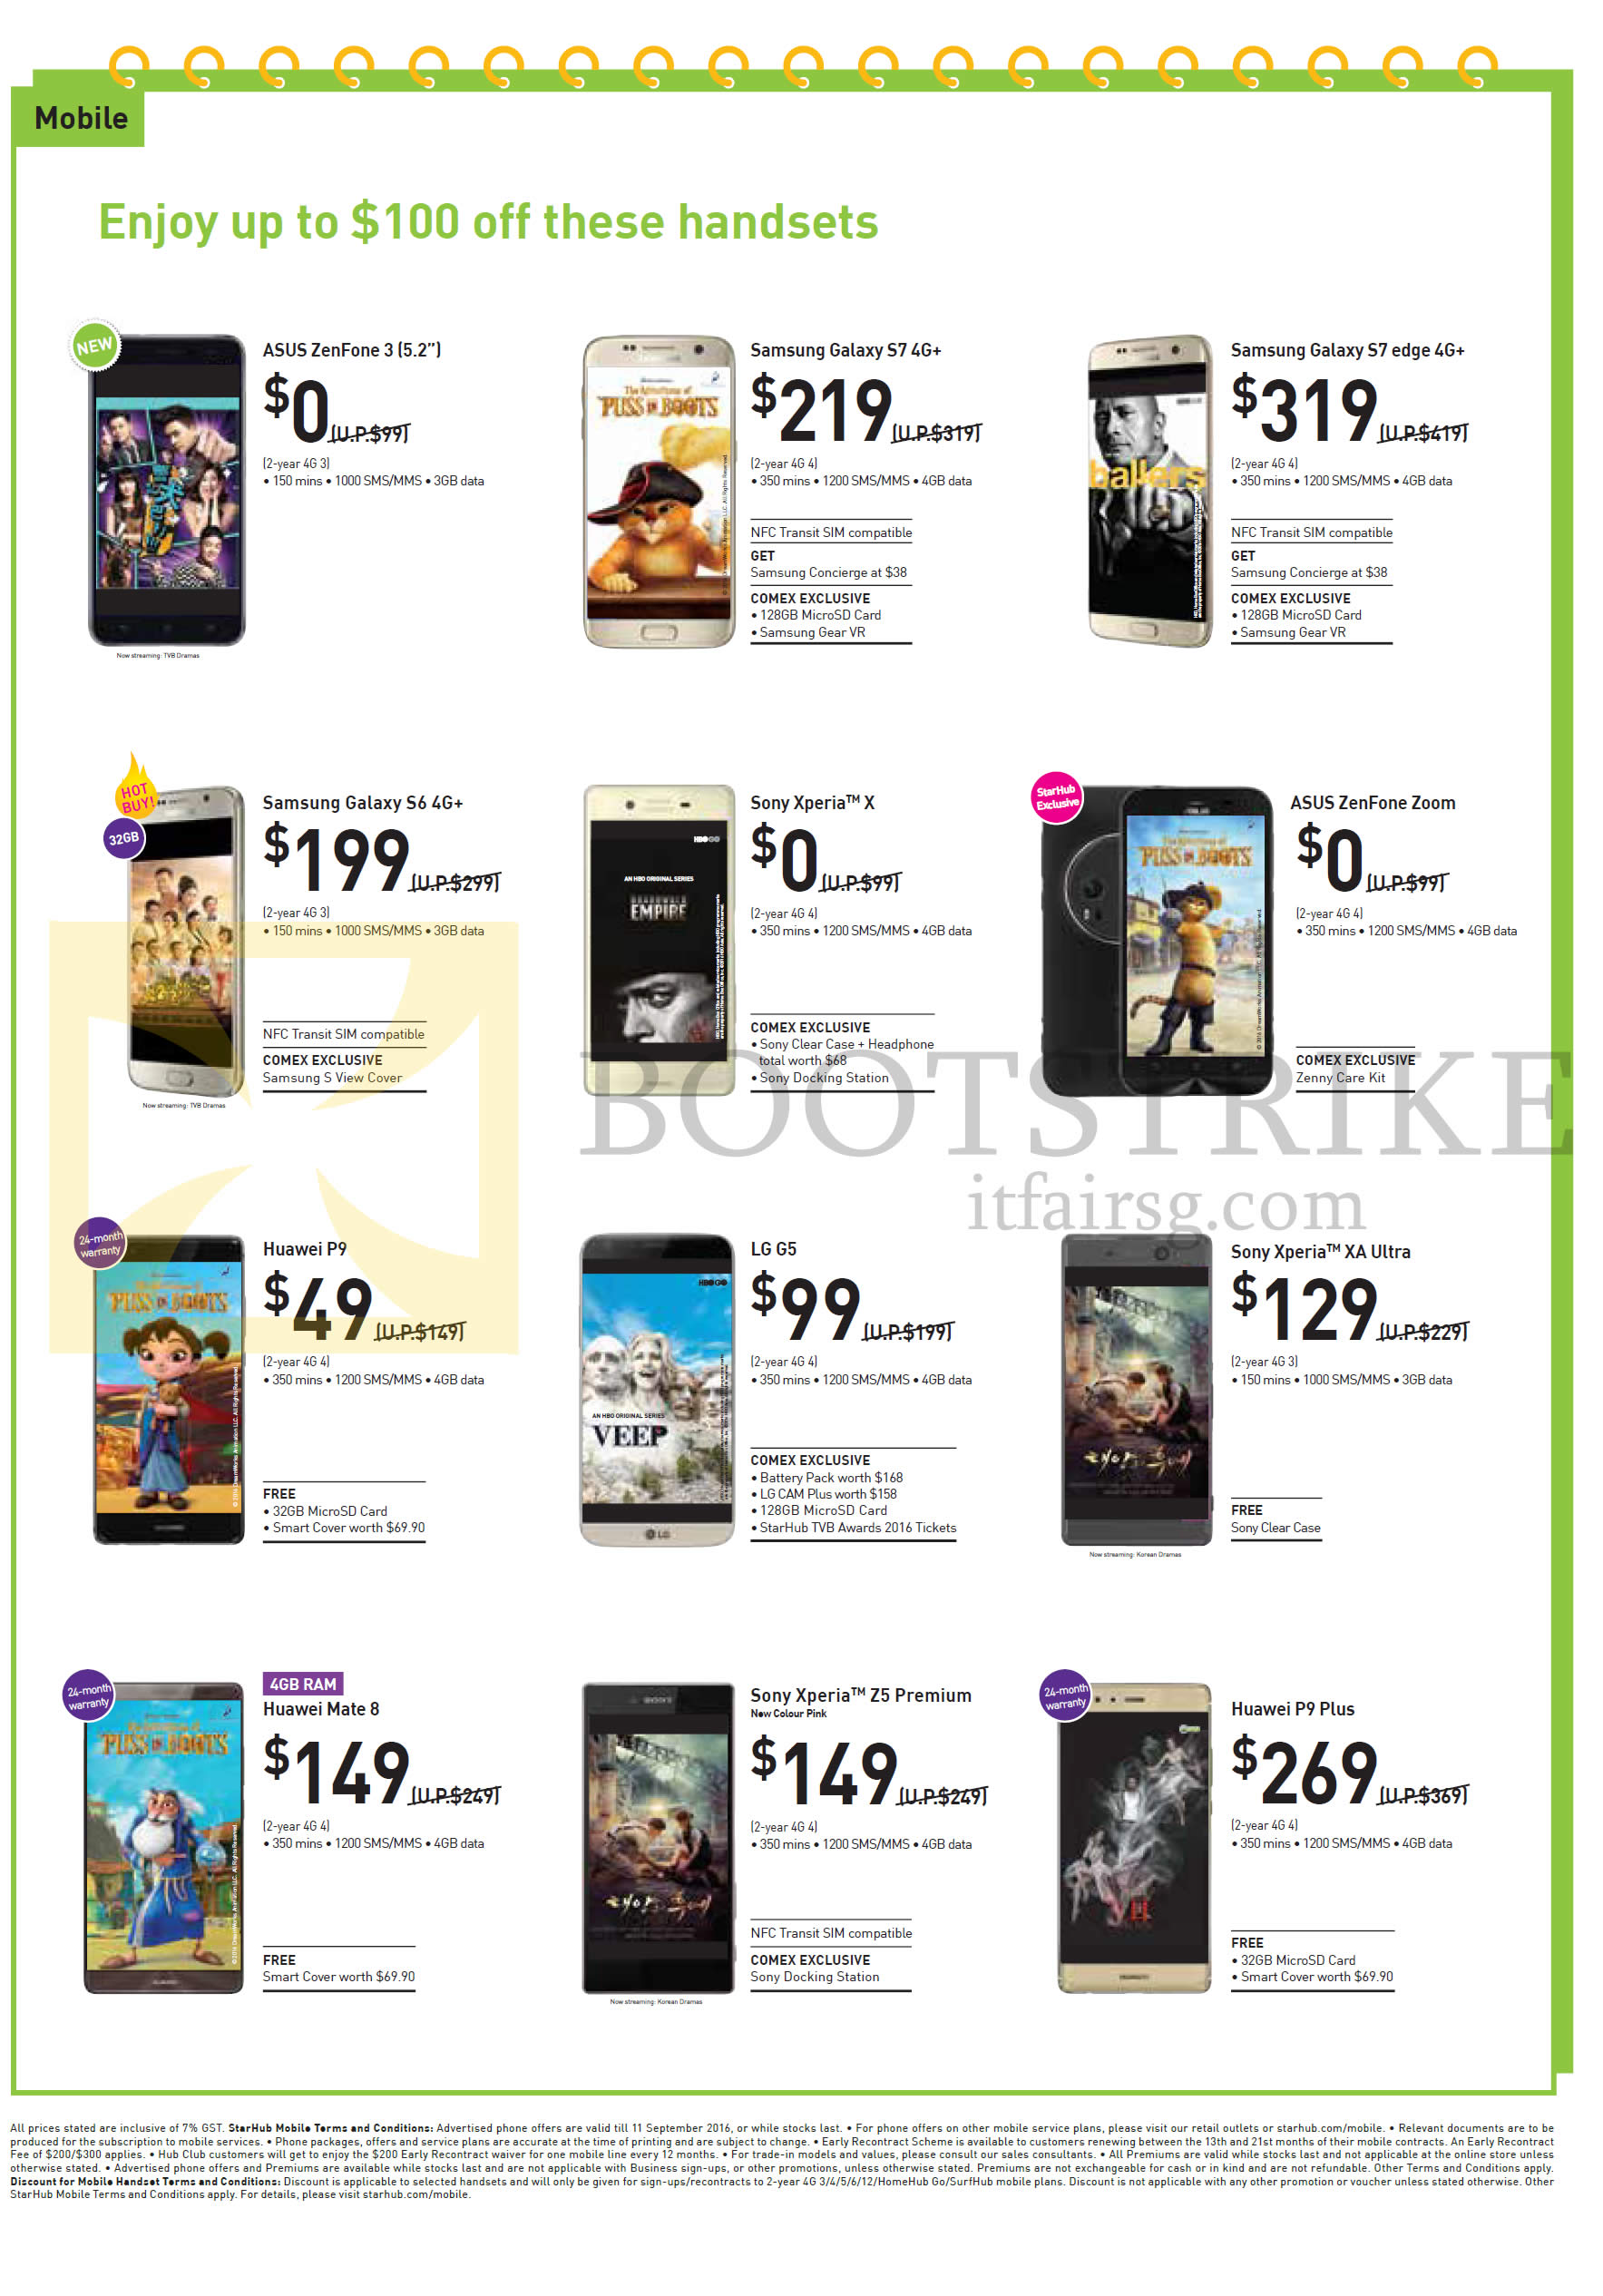 COMEX 2016 price list image brochure of StarHub Mobile Plans Asus Zenfone 3 5.2, Zoom, Samsung Galaxy S7, S7 Edge, S6, Sony Xperia X, XA Ultra, Z5 Premium, LG G5, Huawei P9, Mate 8, P9 Plus